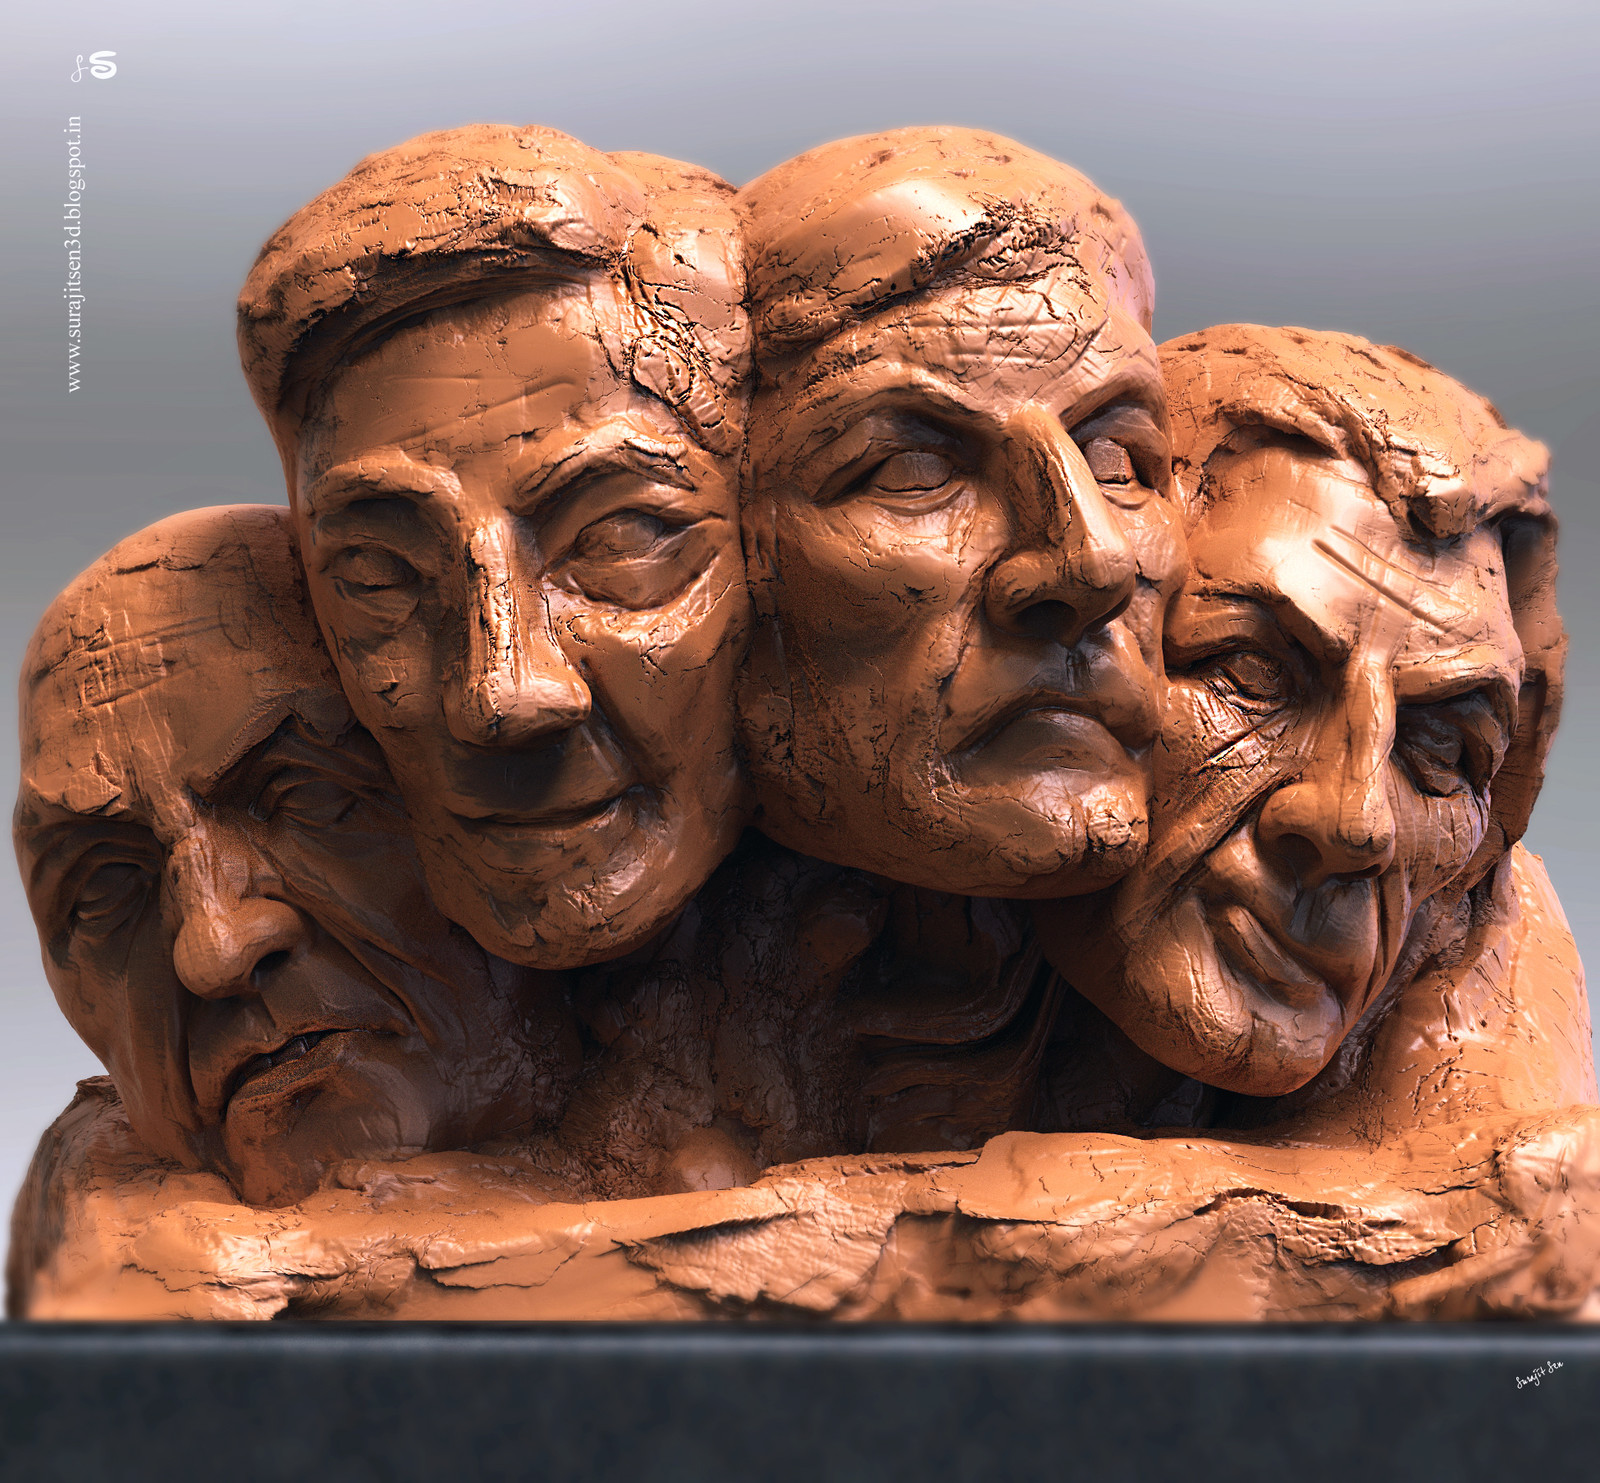 My old concept Digital sculpt.  Gathered. Played with clay and tools!  Wish to share